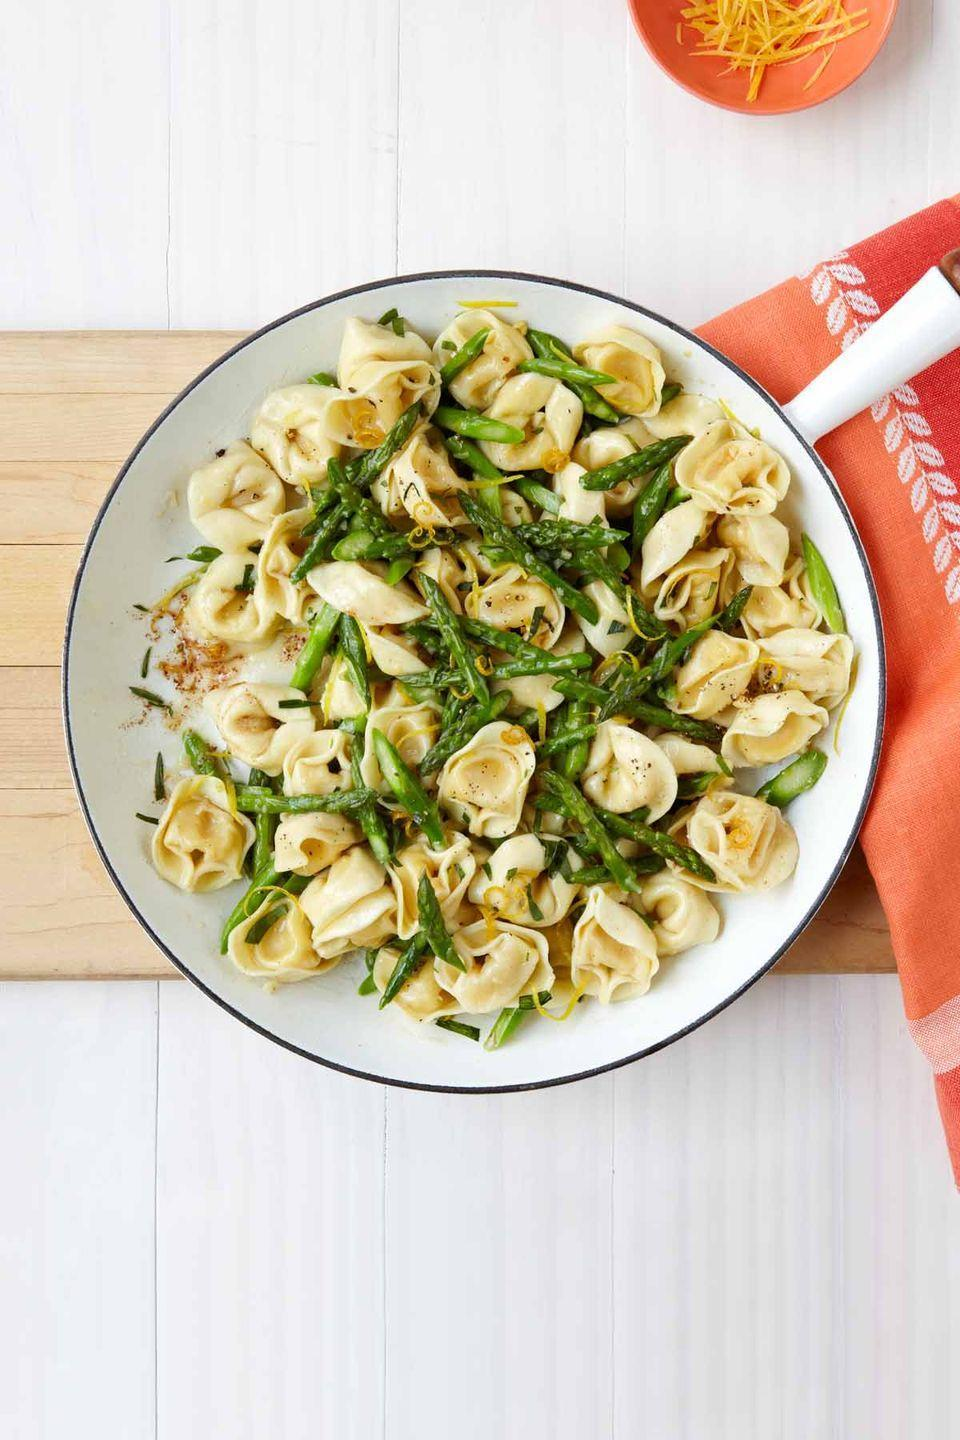 """<p>This light <a href=""""https://www.womansday.com/food-recipes/food-drinks/g2324/pasta-recipes/"""" rel=""""nofollow noopener"""" target=""""_blank"""" data-ylk=""""slk:spring pasta"""" class=""""link rapid-noclick-resp"""">spring pasta</a> will satisfy Mom's craving for Italian, thanks to the rich flavors of brown butter and toasted garlic. </p><p><em><a href=""""https://www.womansday.com/food-recipes/food-drinks/recipes/a12039/brown-butter-tortellini-toasted-garlic-asparagus-recipe-wdy0513/"""" rel=""""nofollow noopener"""" target=""""_blank"""" data-ylk=""""slk:Get the recipe for Brown Butter Tortellini."""" class=""""link rapid-noclick-resp"""">Get the recipe for Brown Butter Tortellini.</a></em></p>"""